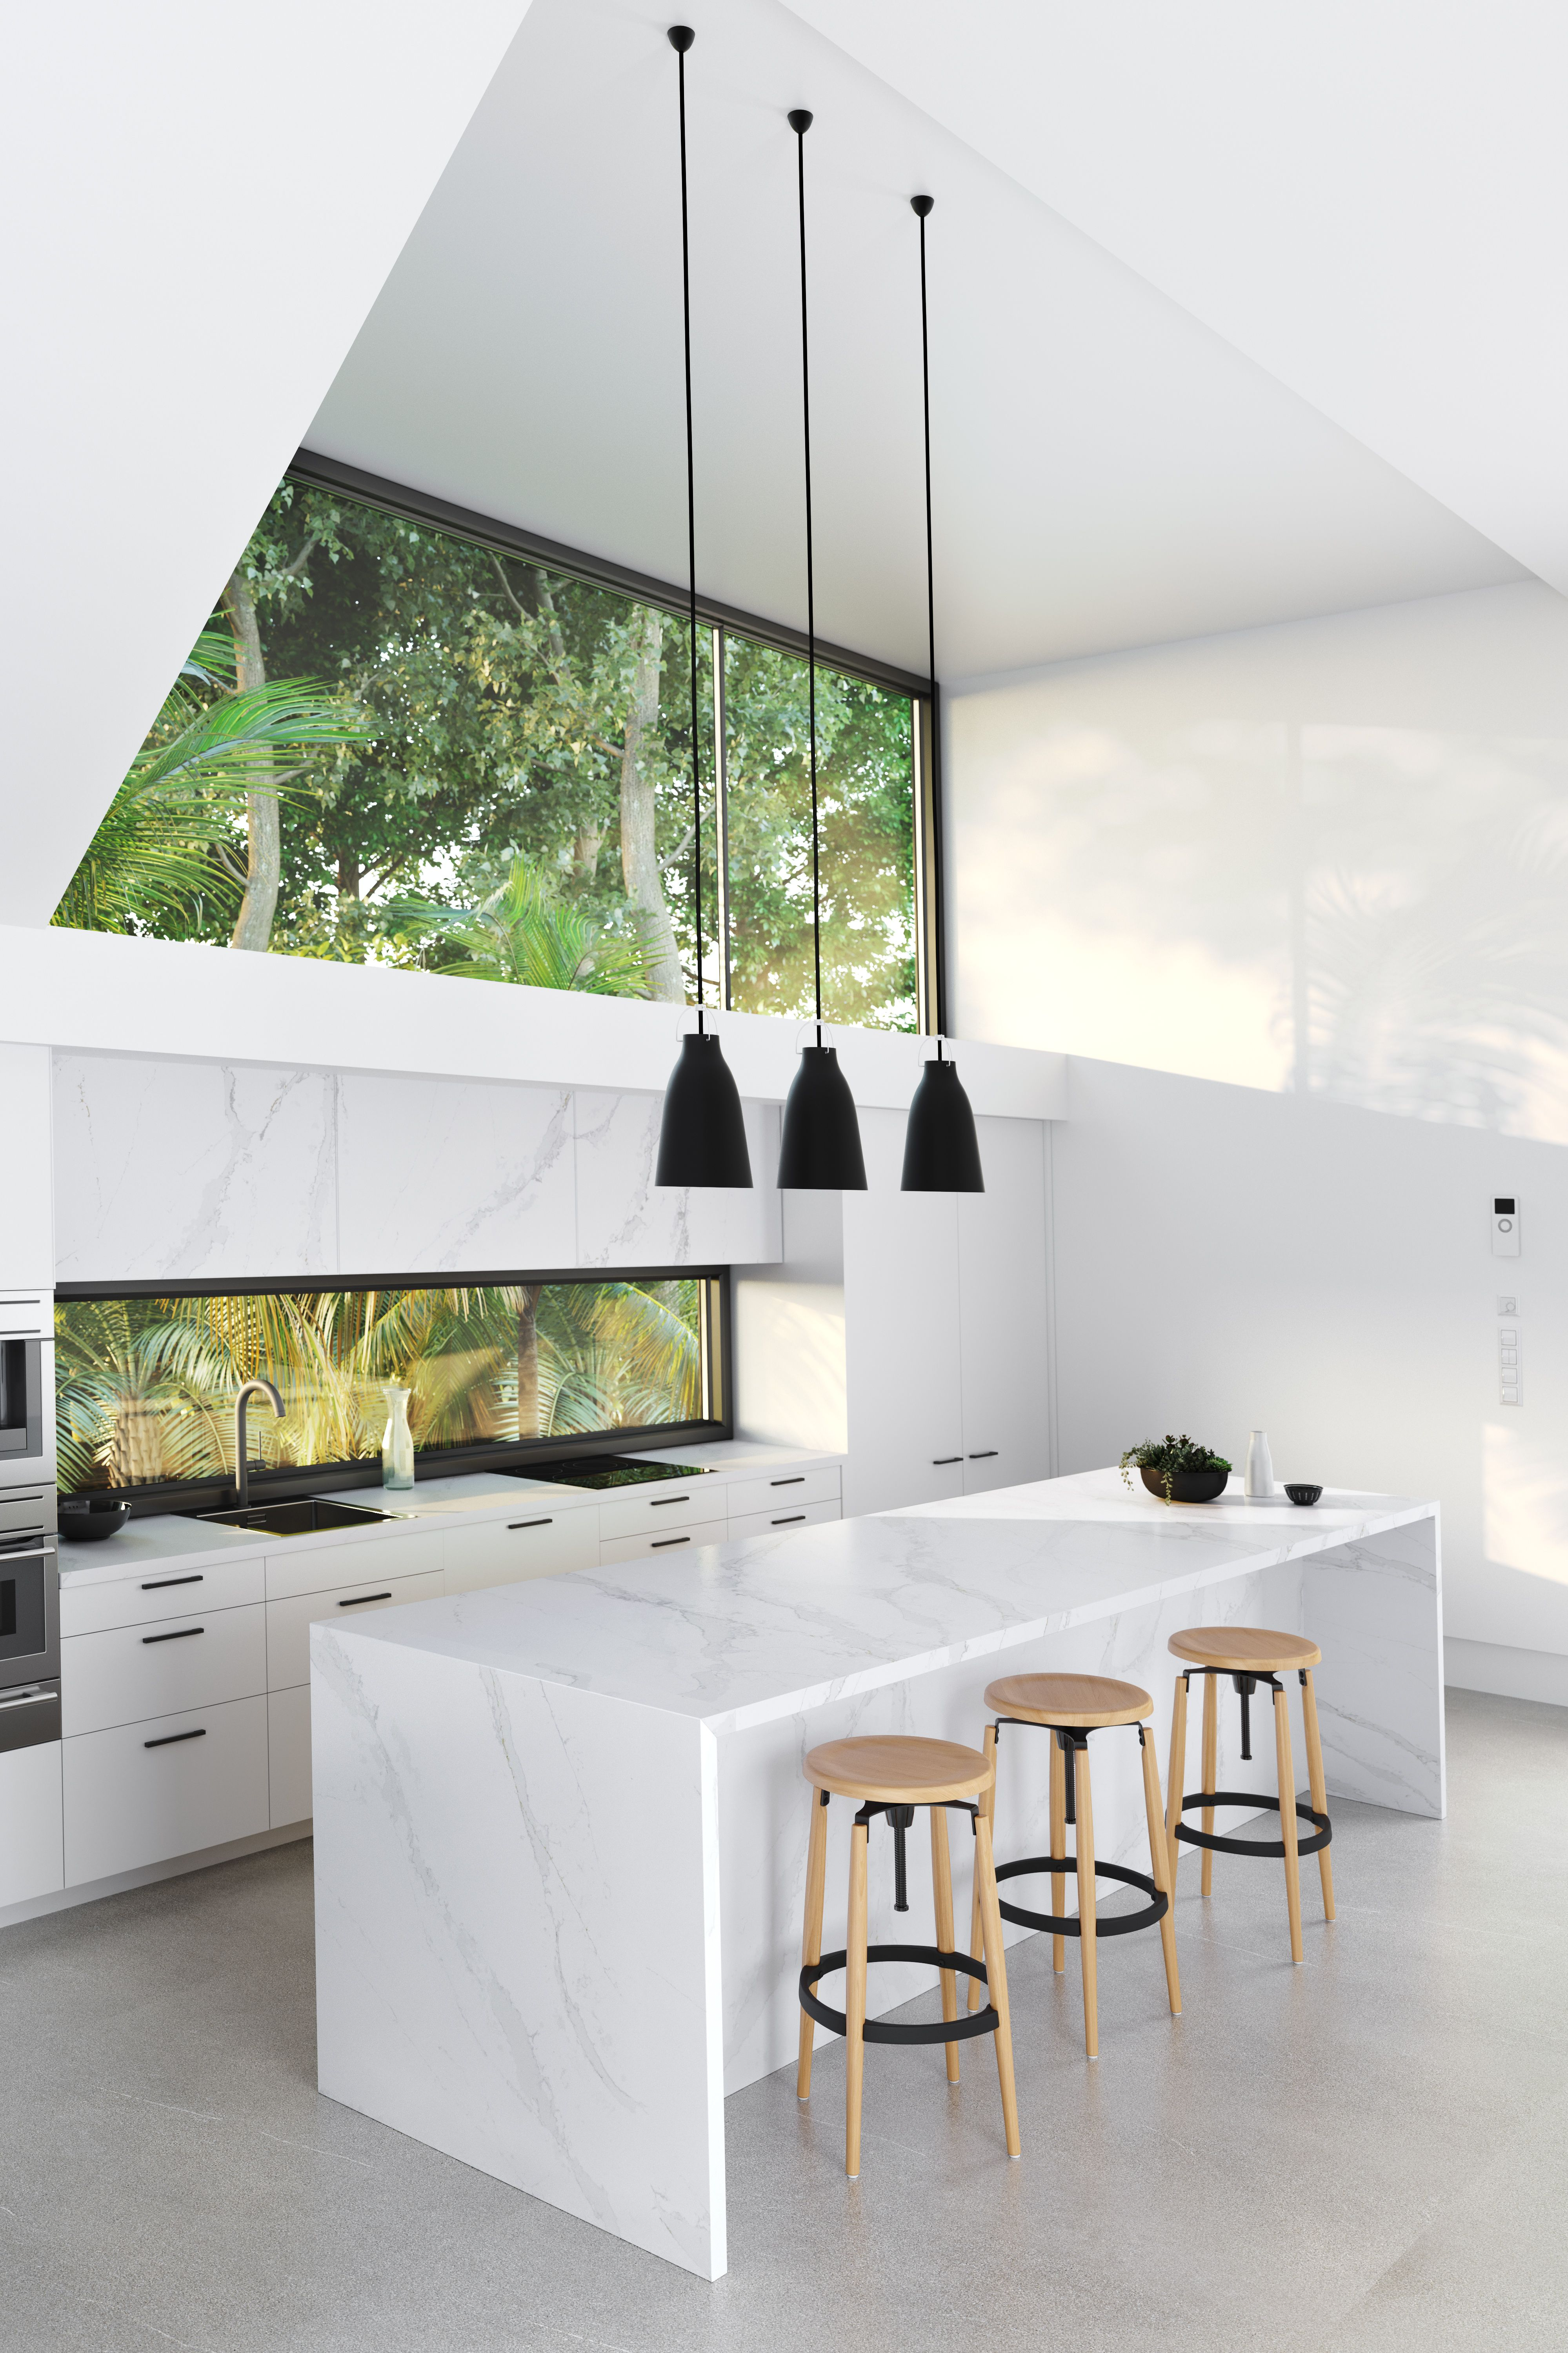 Faire Ses Elements De Cuisine En Beton Cellulaire This Modern And Illuminated Kitchen Is The Clear Definition Of